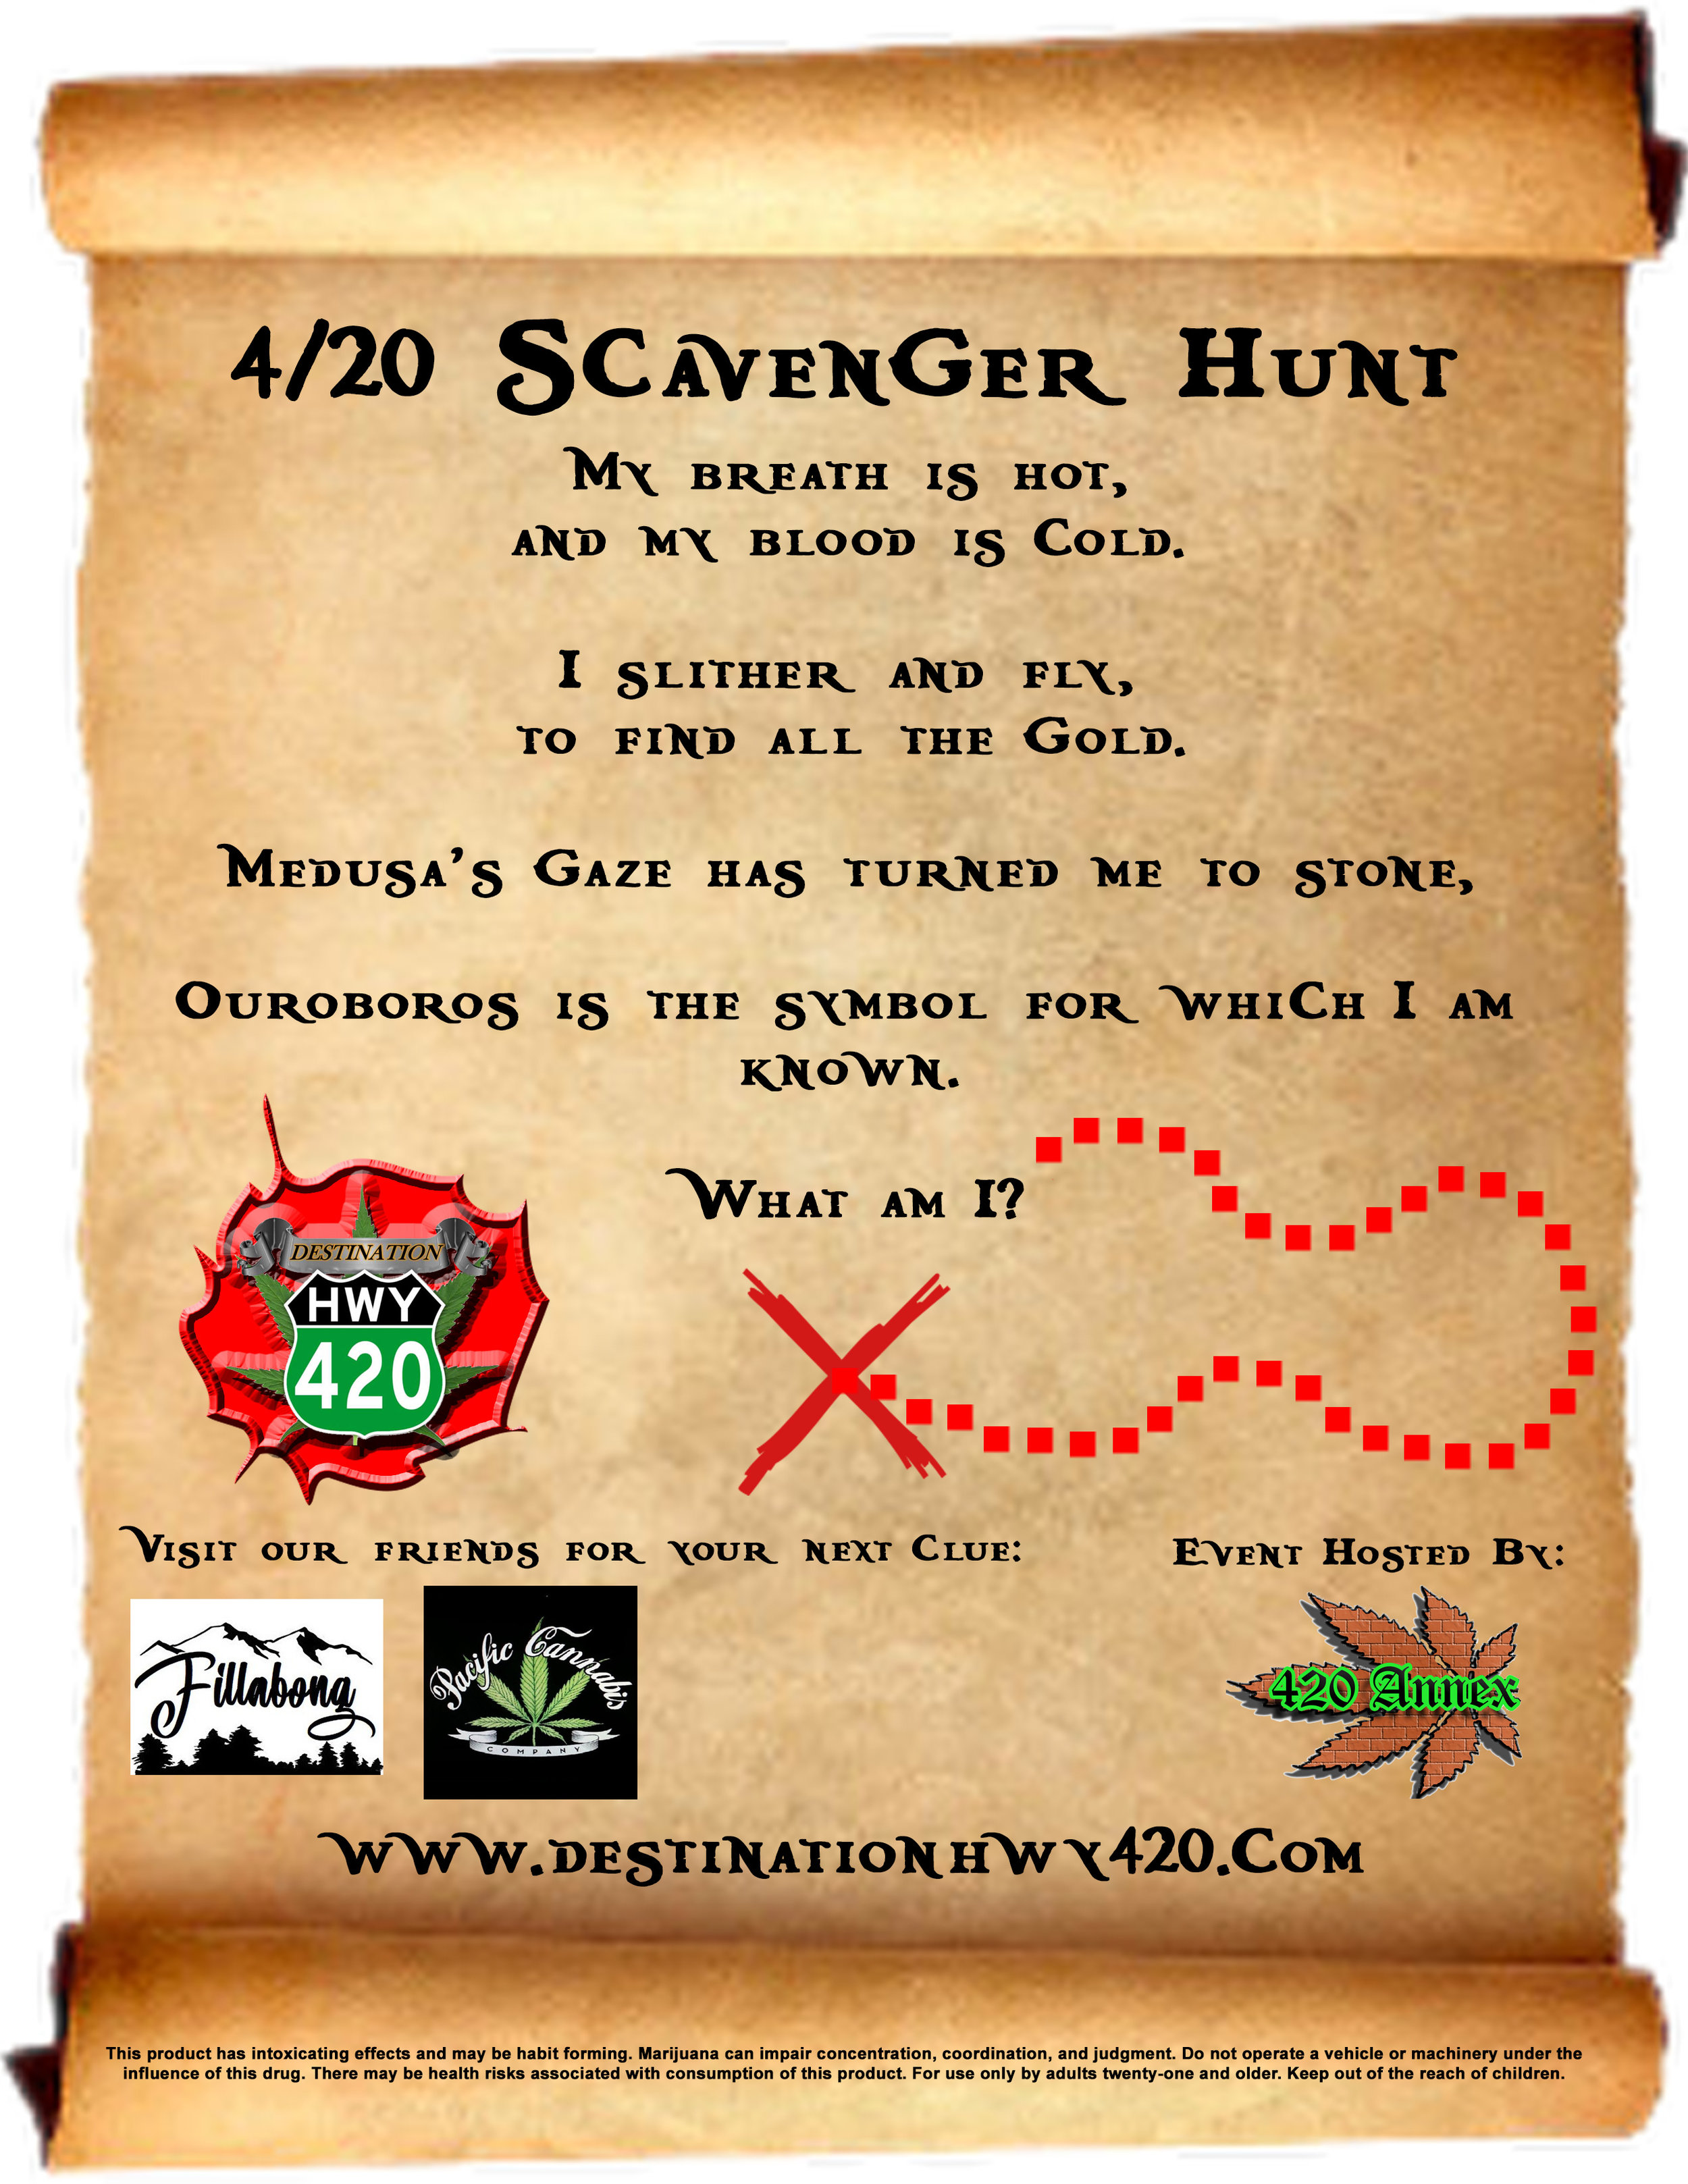 This is an example riddle from Destination HWY 420 for the 4/20 Scavenger Hunt. Fillabong Bremerton, Pacific Cannabis Company, and Destination HWY 420 are all participating in the 2019 4/20 Scavenger Hunt. To participate, stop by one of these marijuana retail stores, pick up a passport card, and solve each store's riddle. Once you've completed your passport card, bring it with you to the 4/20 Fair for a chance to win some incredible 420 Annex gift baskets!